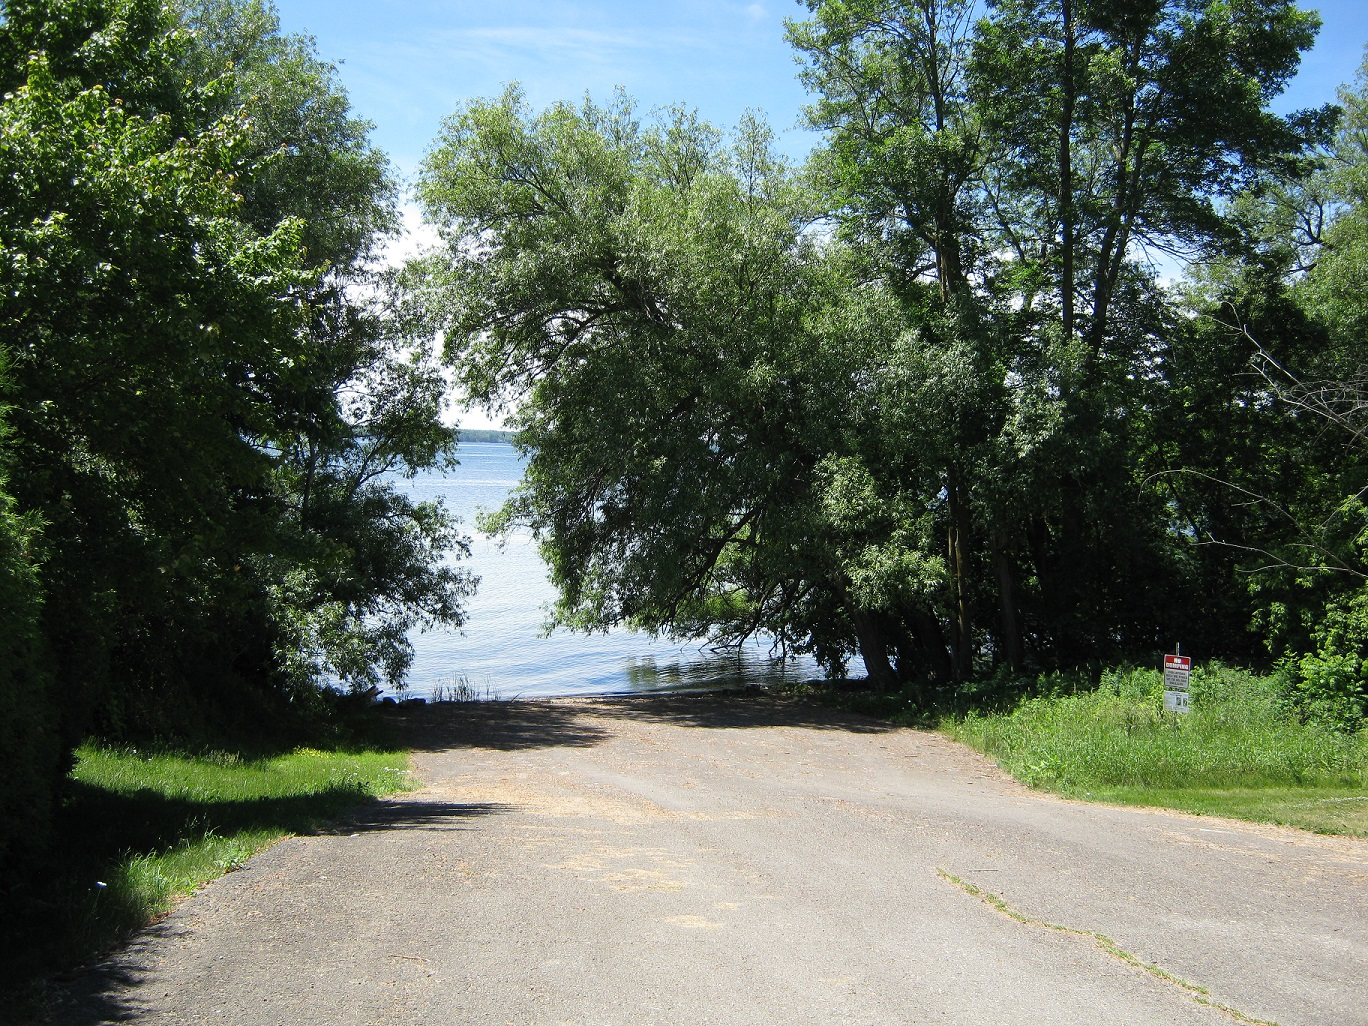 lane going into the st. lawrence river with big trees on either side